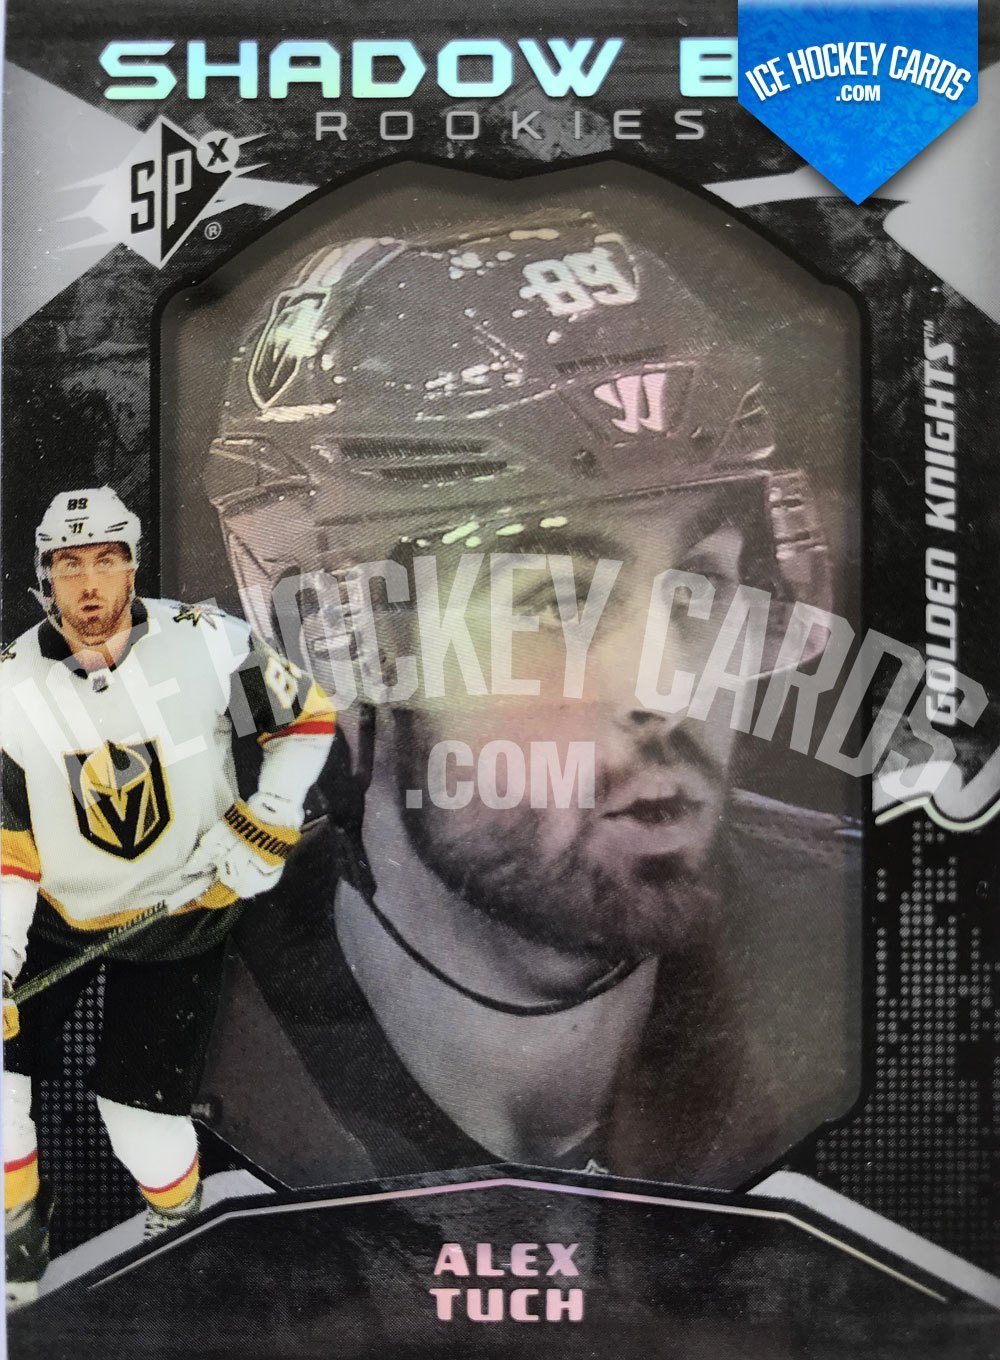 Upper Deck - SPx 17-18 - Alex Tuch Shadow Box Rookies